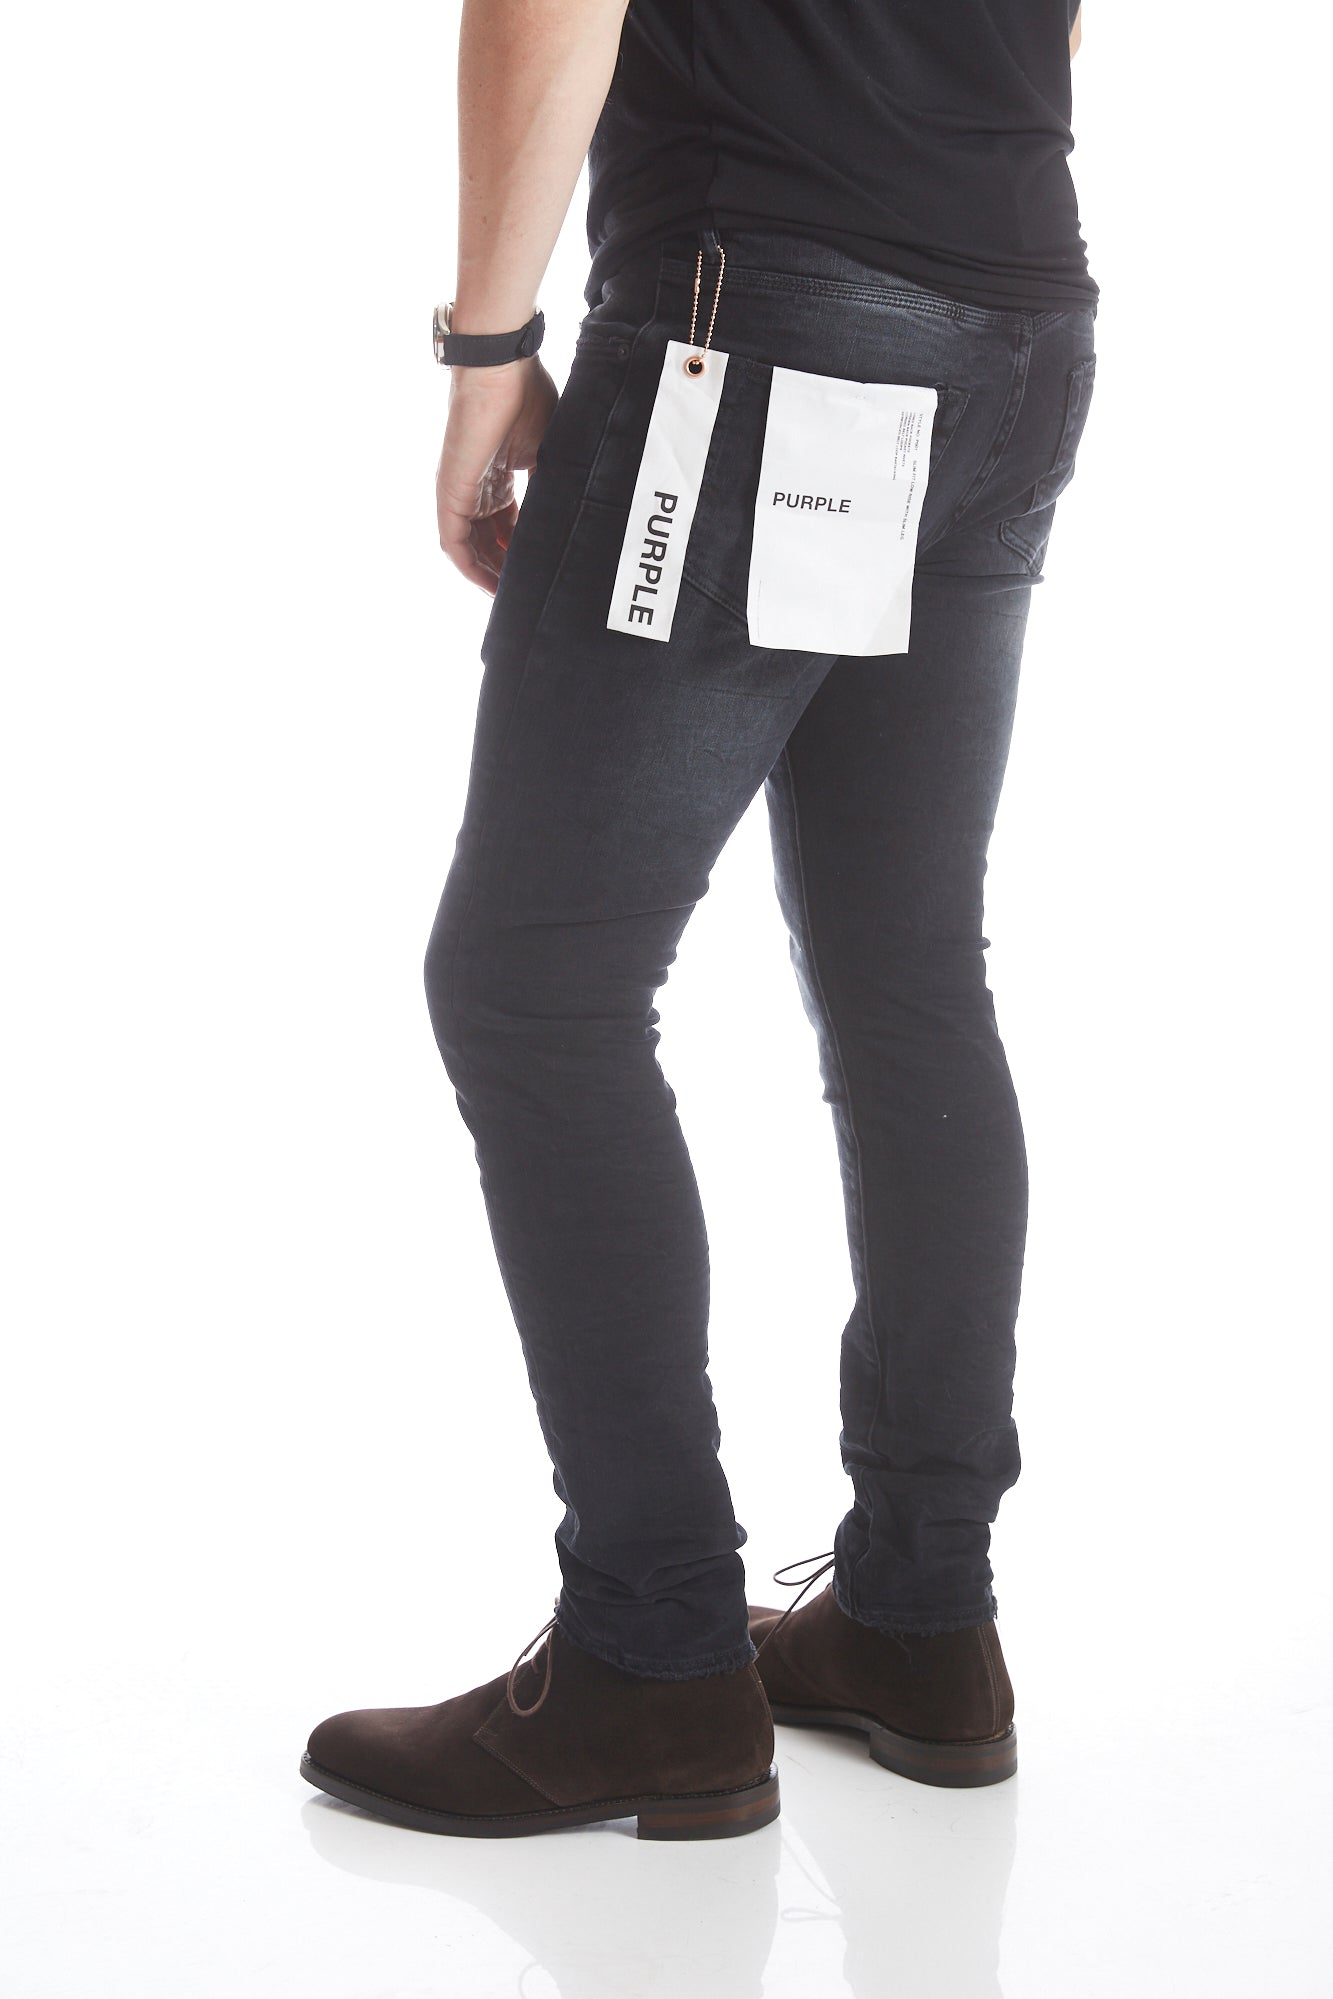 Purple Brand P001 Low Rise Black Wash Jeans